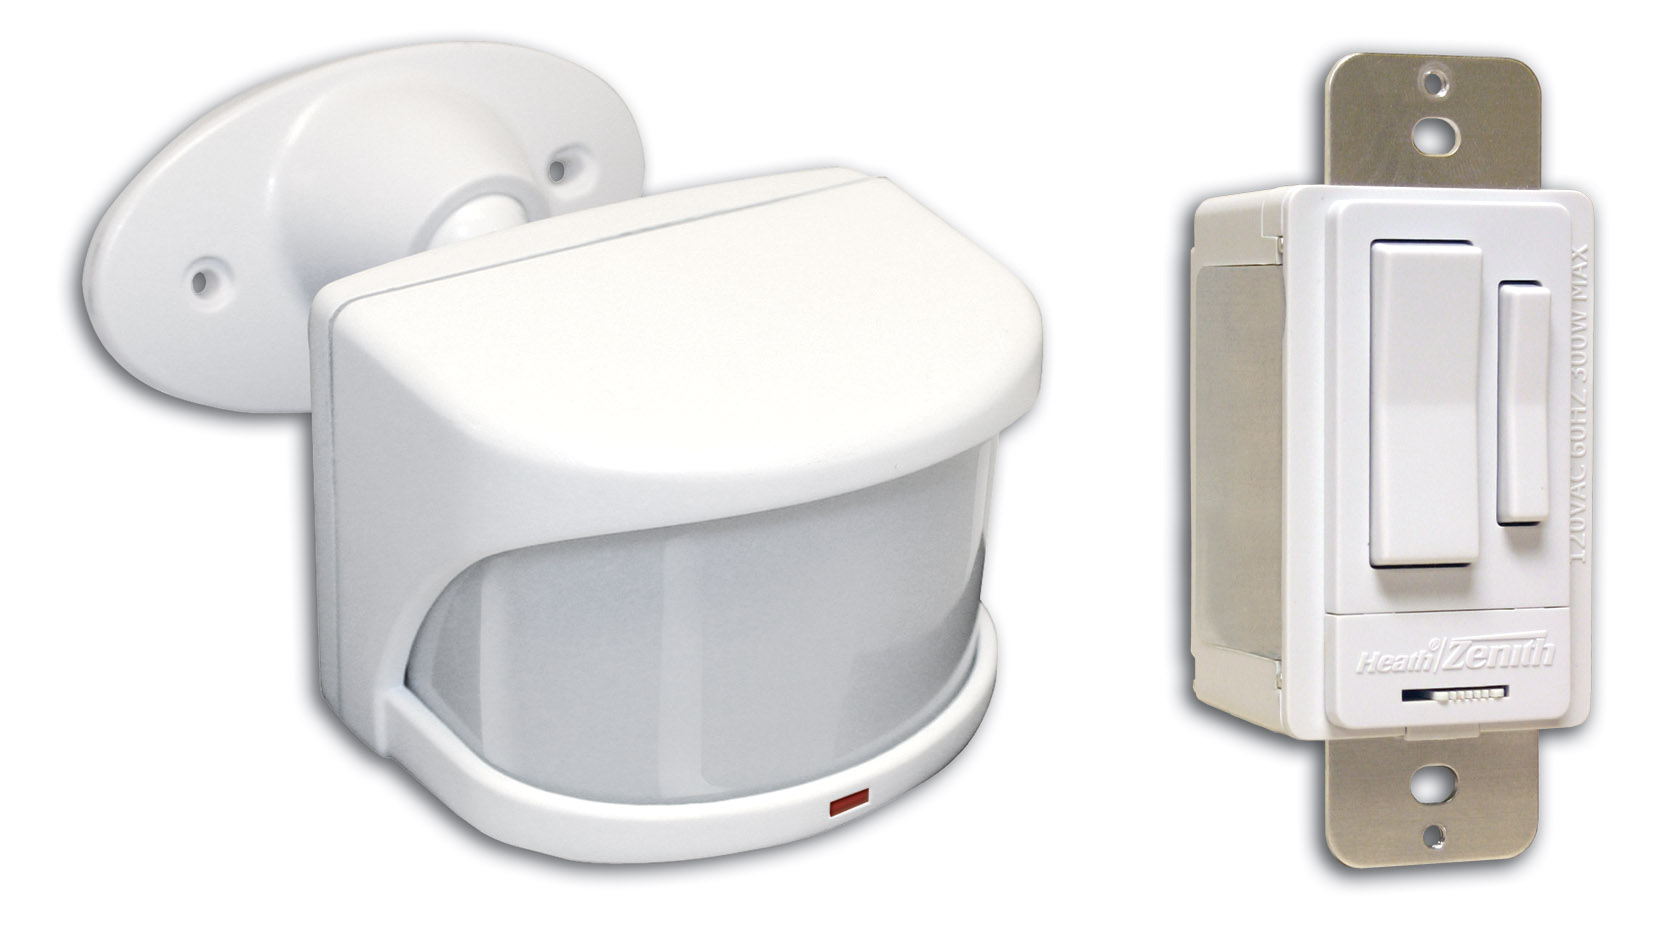 Motion Sensors For Outdoor Lighting: heath-zenith-sl-6053-wh-motion-detector-kit,Lighting